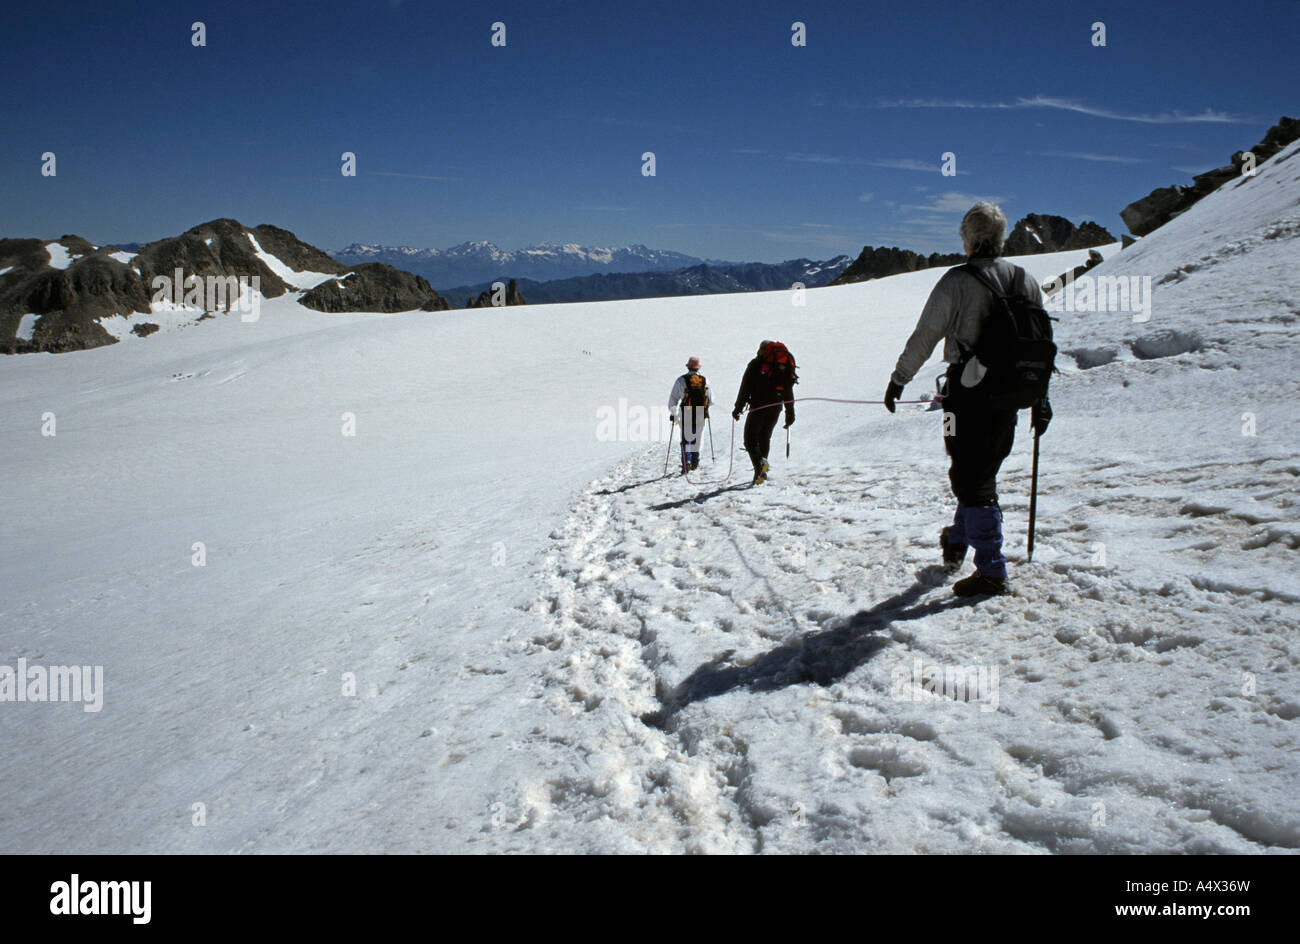 Trient Glacier A group of three climbers hiking together across the glacier Alpine region France - Stock Image